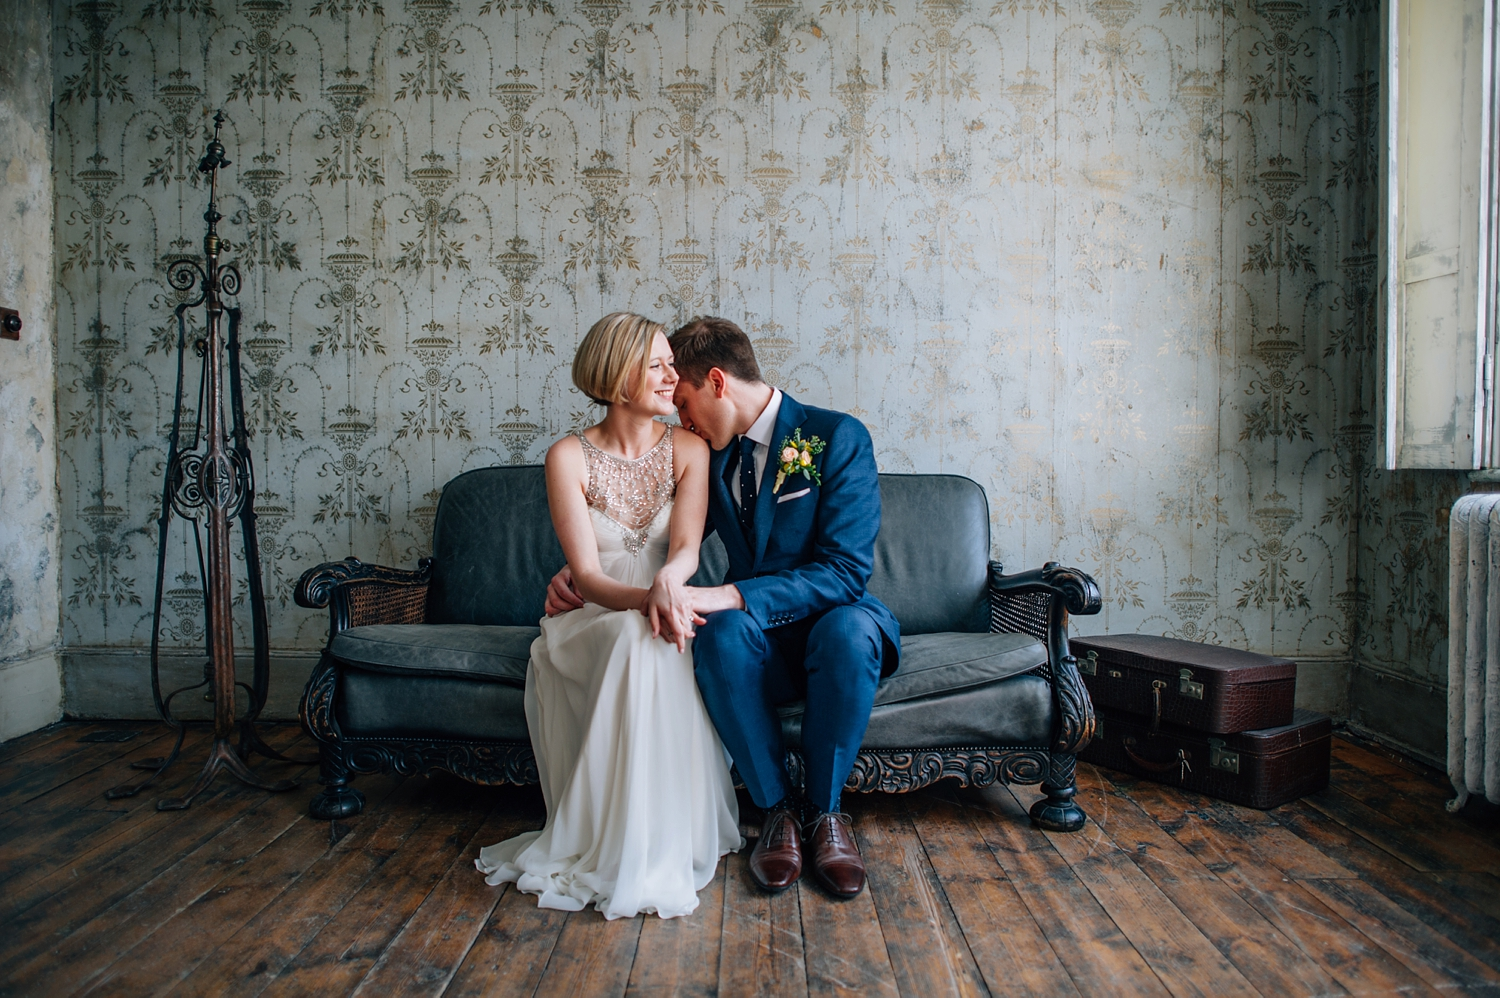 0112-lisa-devine-alternative-wedding-photography-london-hackney-dalston-london-photography-townhall-hotel.JPG